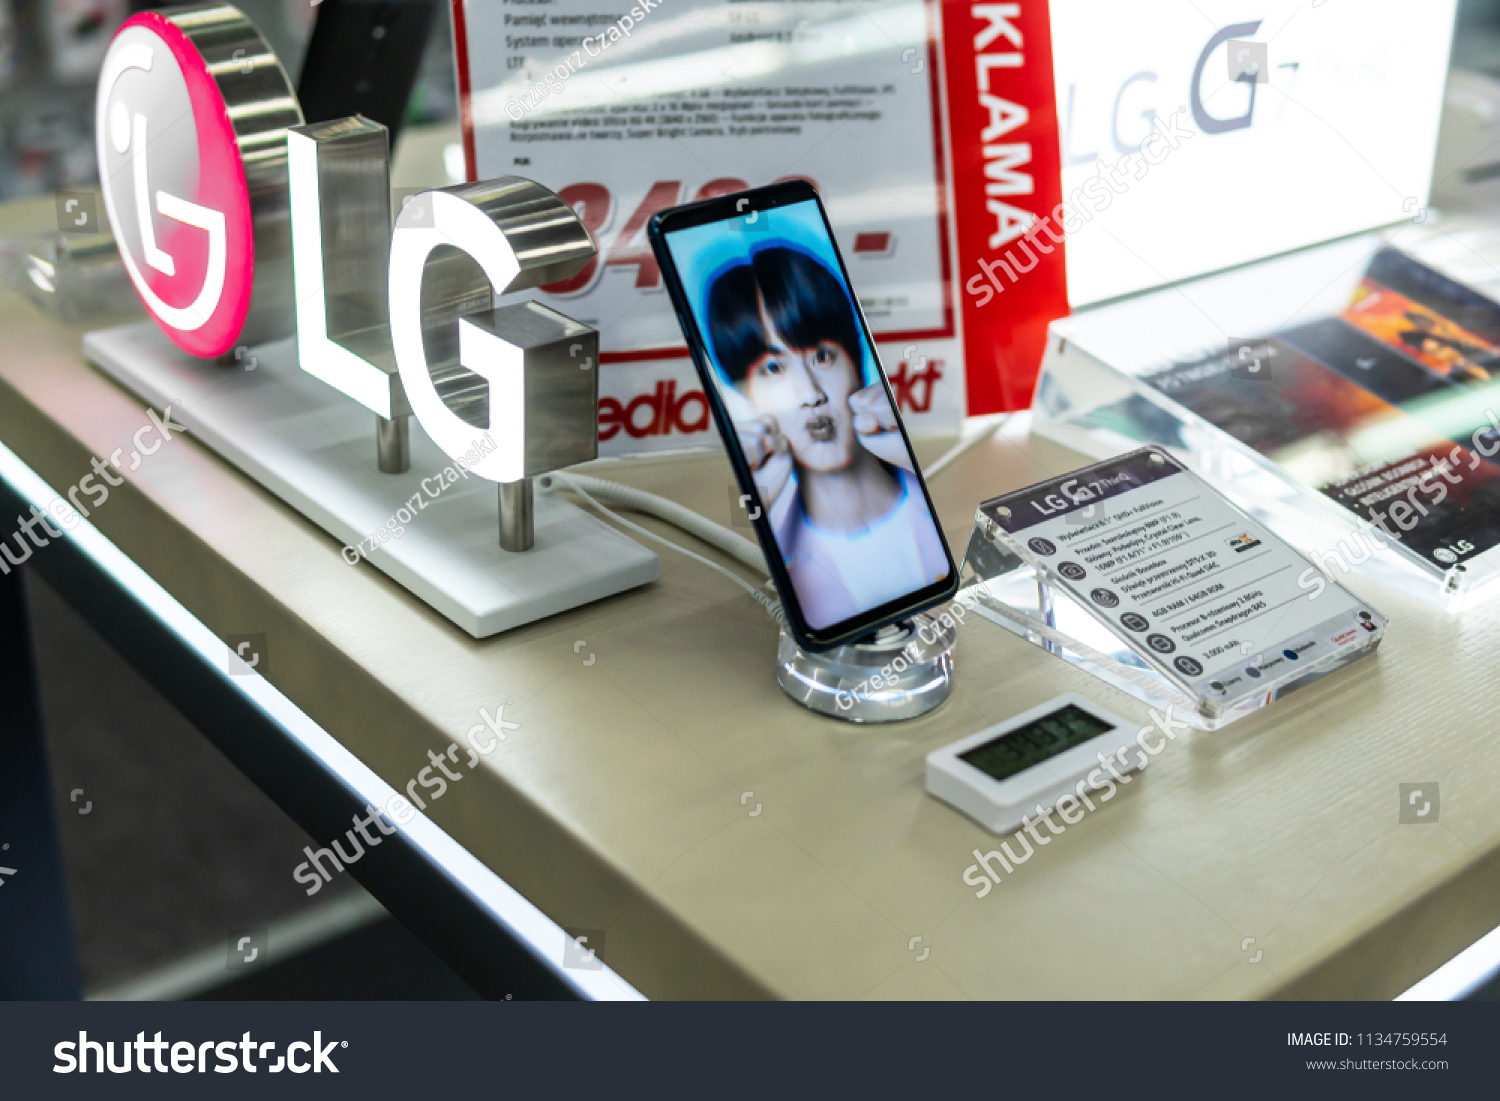 Telefono Movil Libre Media Markt Lodz Poland July 11 2018 Inside Foto De Stock Editar Ahora